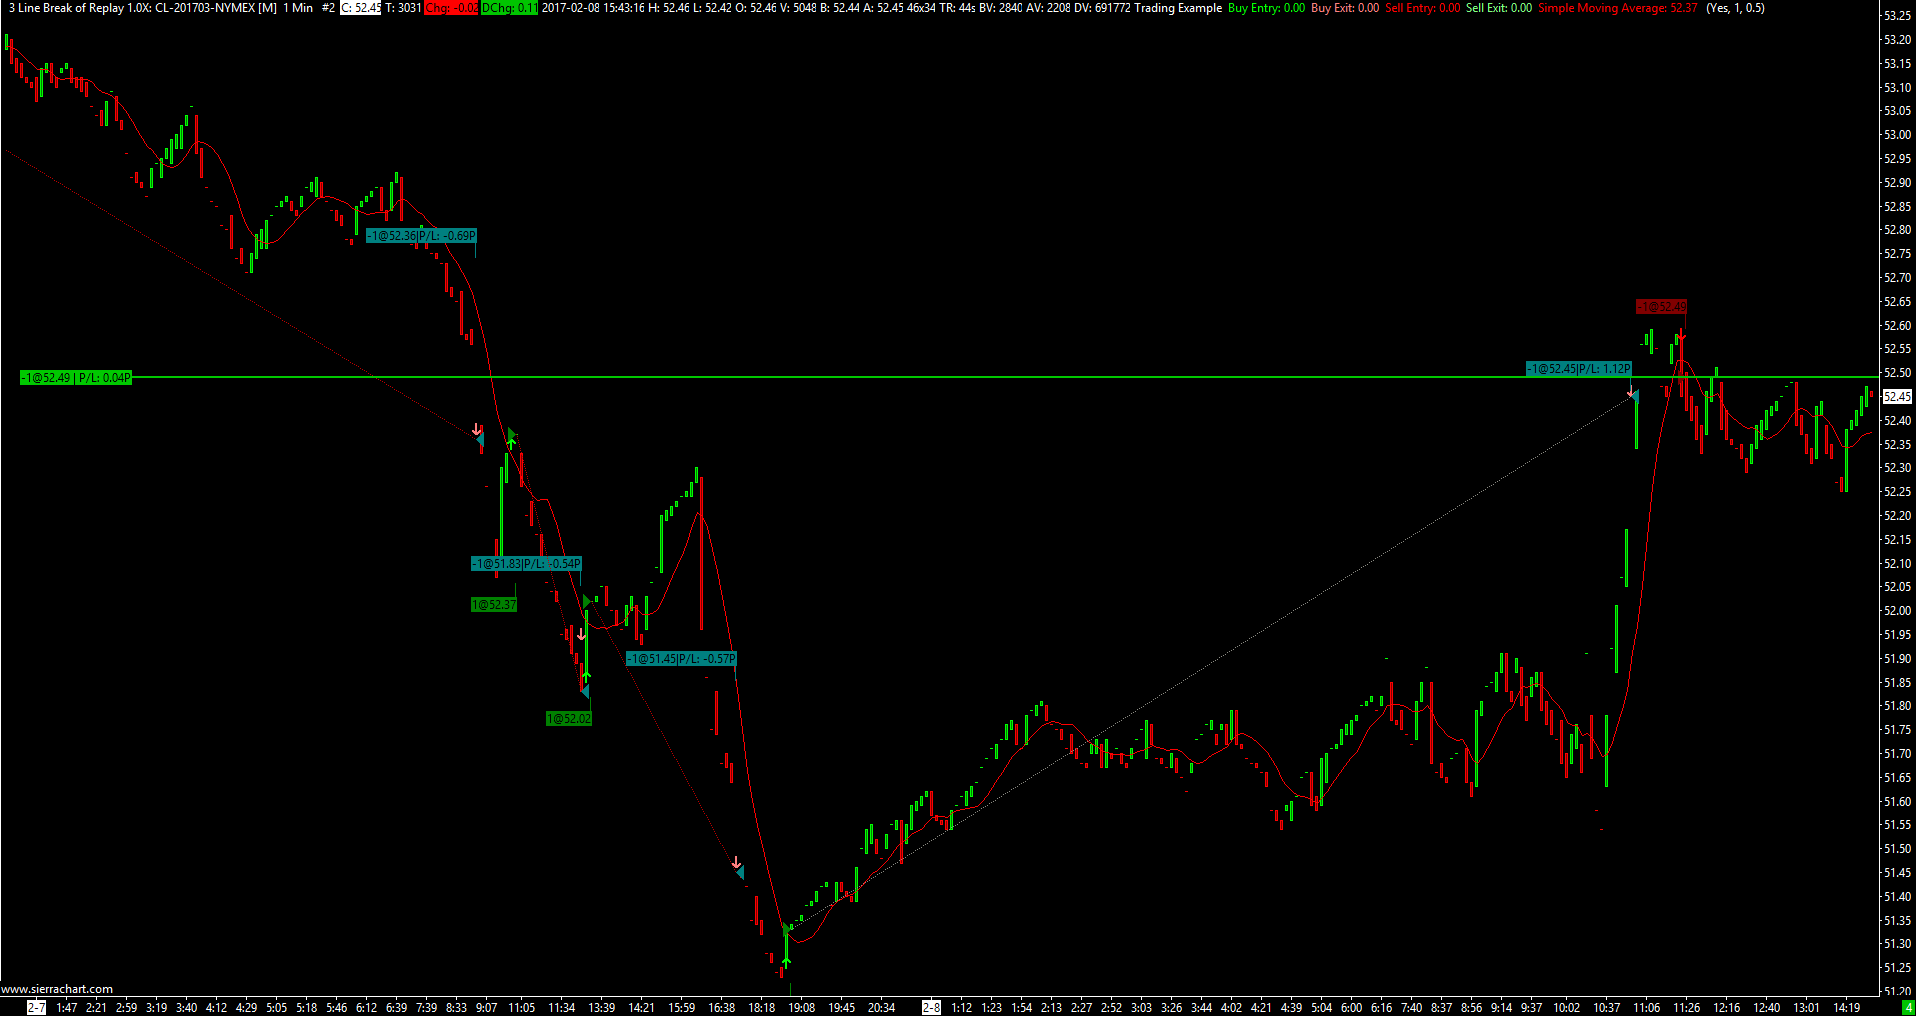 Backtesting in 3-line break or BetterRenko charts